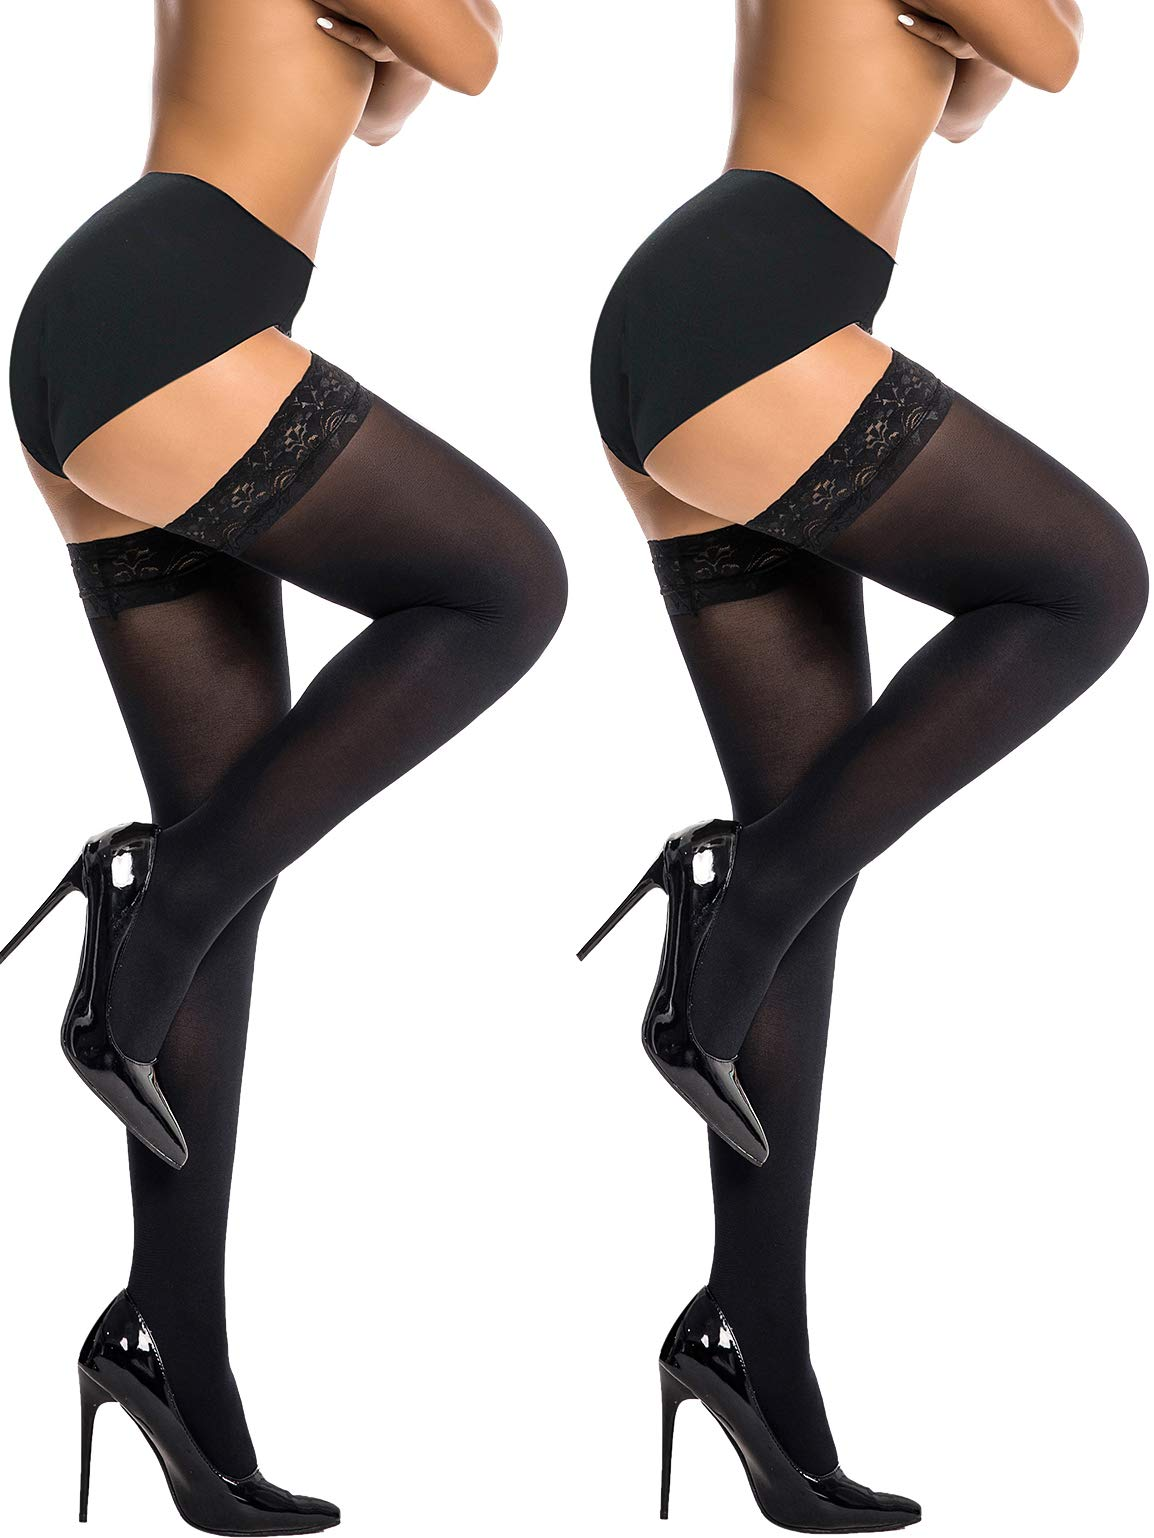 Semi Sheer Stay Up Lingerie Thigh High Stockings Lace Top Size A-D of HONENNA